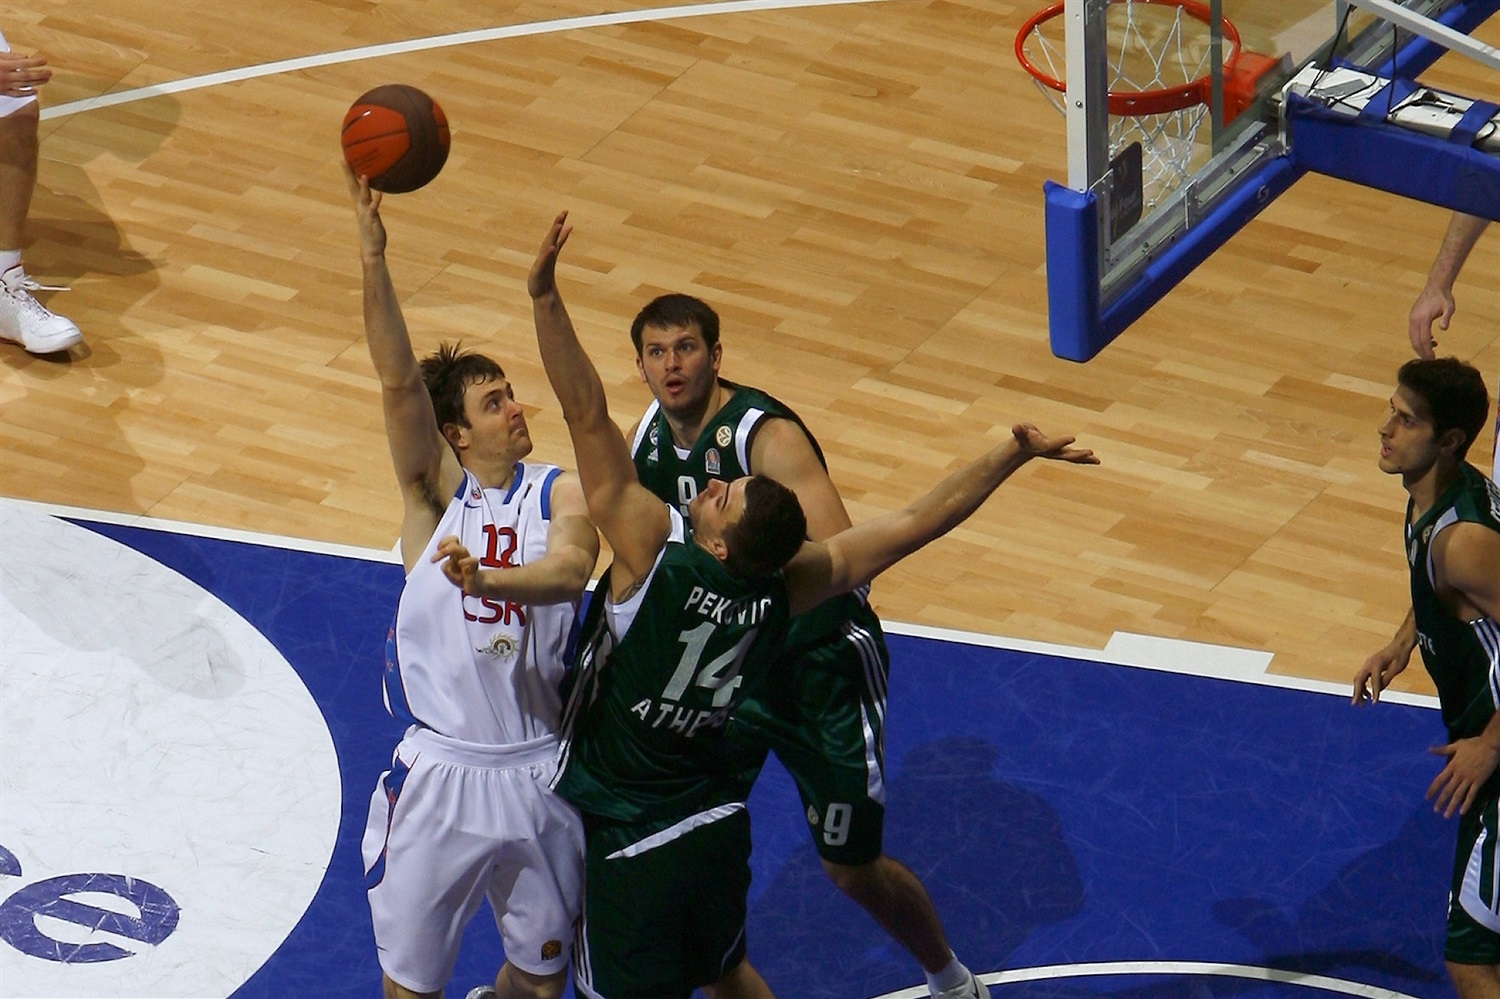 Erazem Lorbek - CSKA Moscow - Final Four Berlin 2009 - EB08